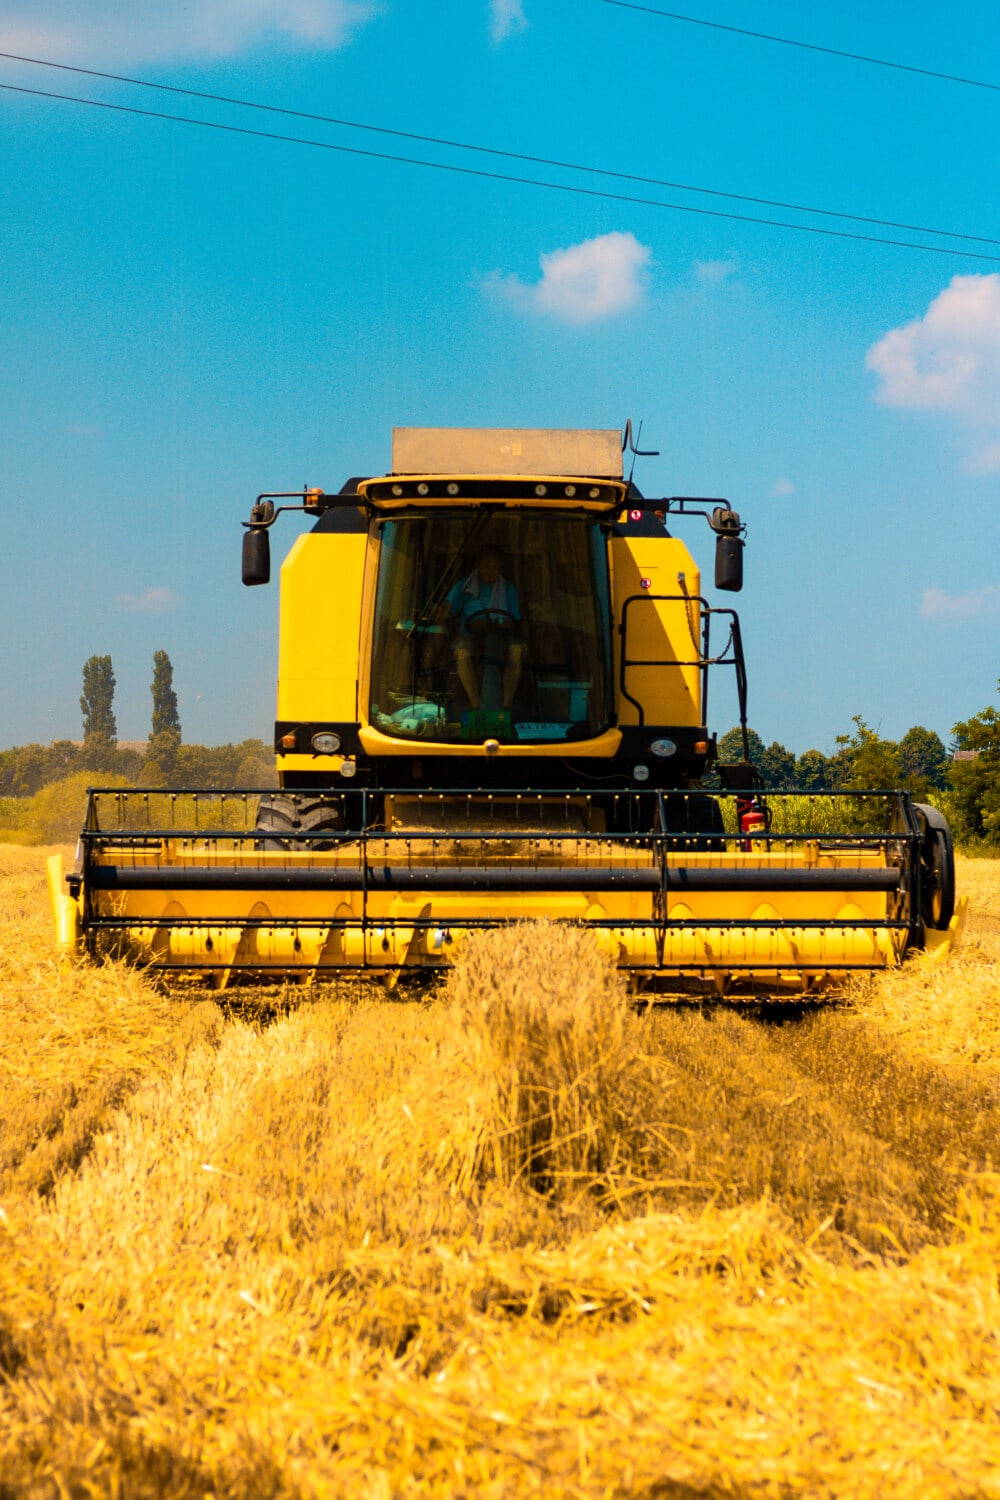 machine, agriculture, combine, wheatfield, summer, farmer, device, harvester, machinery, industry